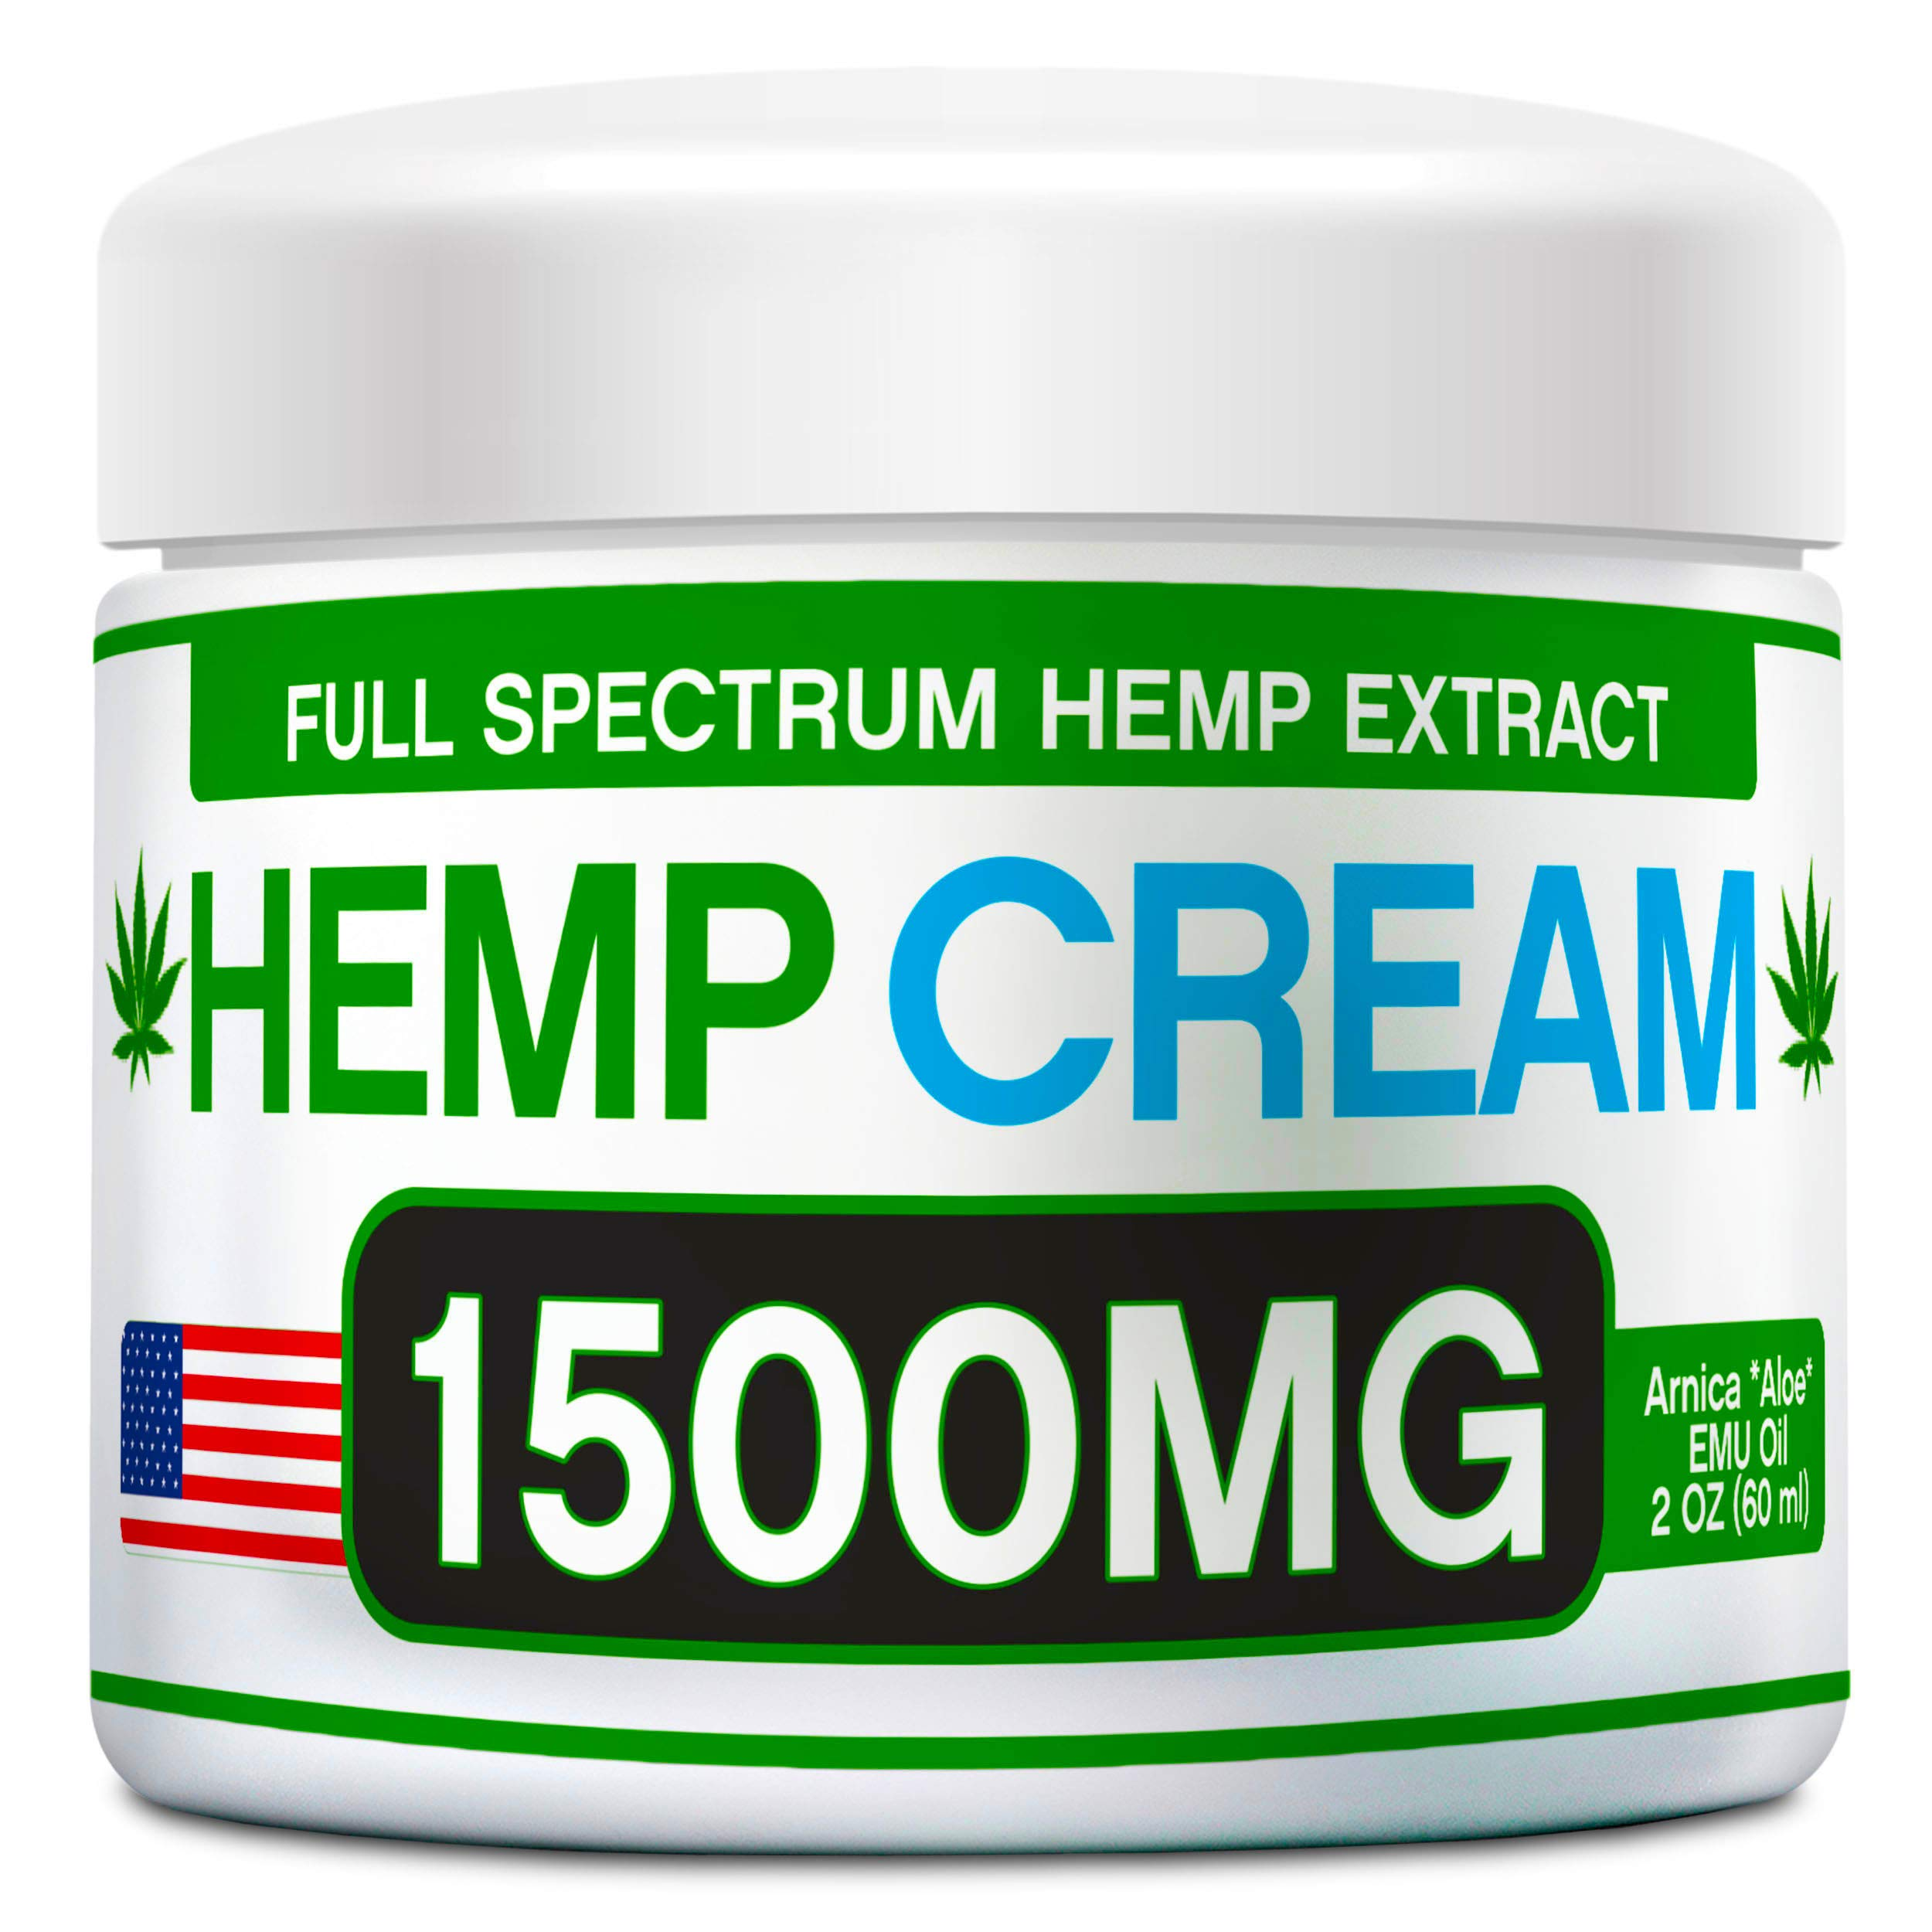 Organic Hemp Pain Relief Cream – 1500 Mg – Made in USA - Natural Hemp Extract Cream for Muscle, Inflammation, Joint, Back, Neck, Knee & Arthritis Pain with Arnica, Aloe, MSM & EMU Oil - GMO-Free